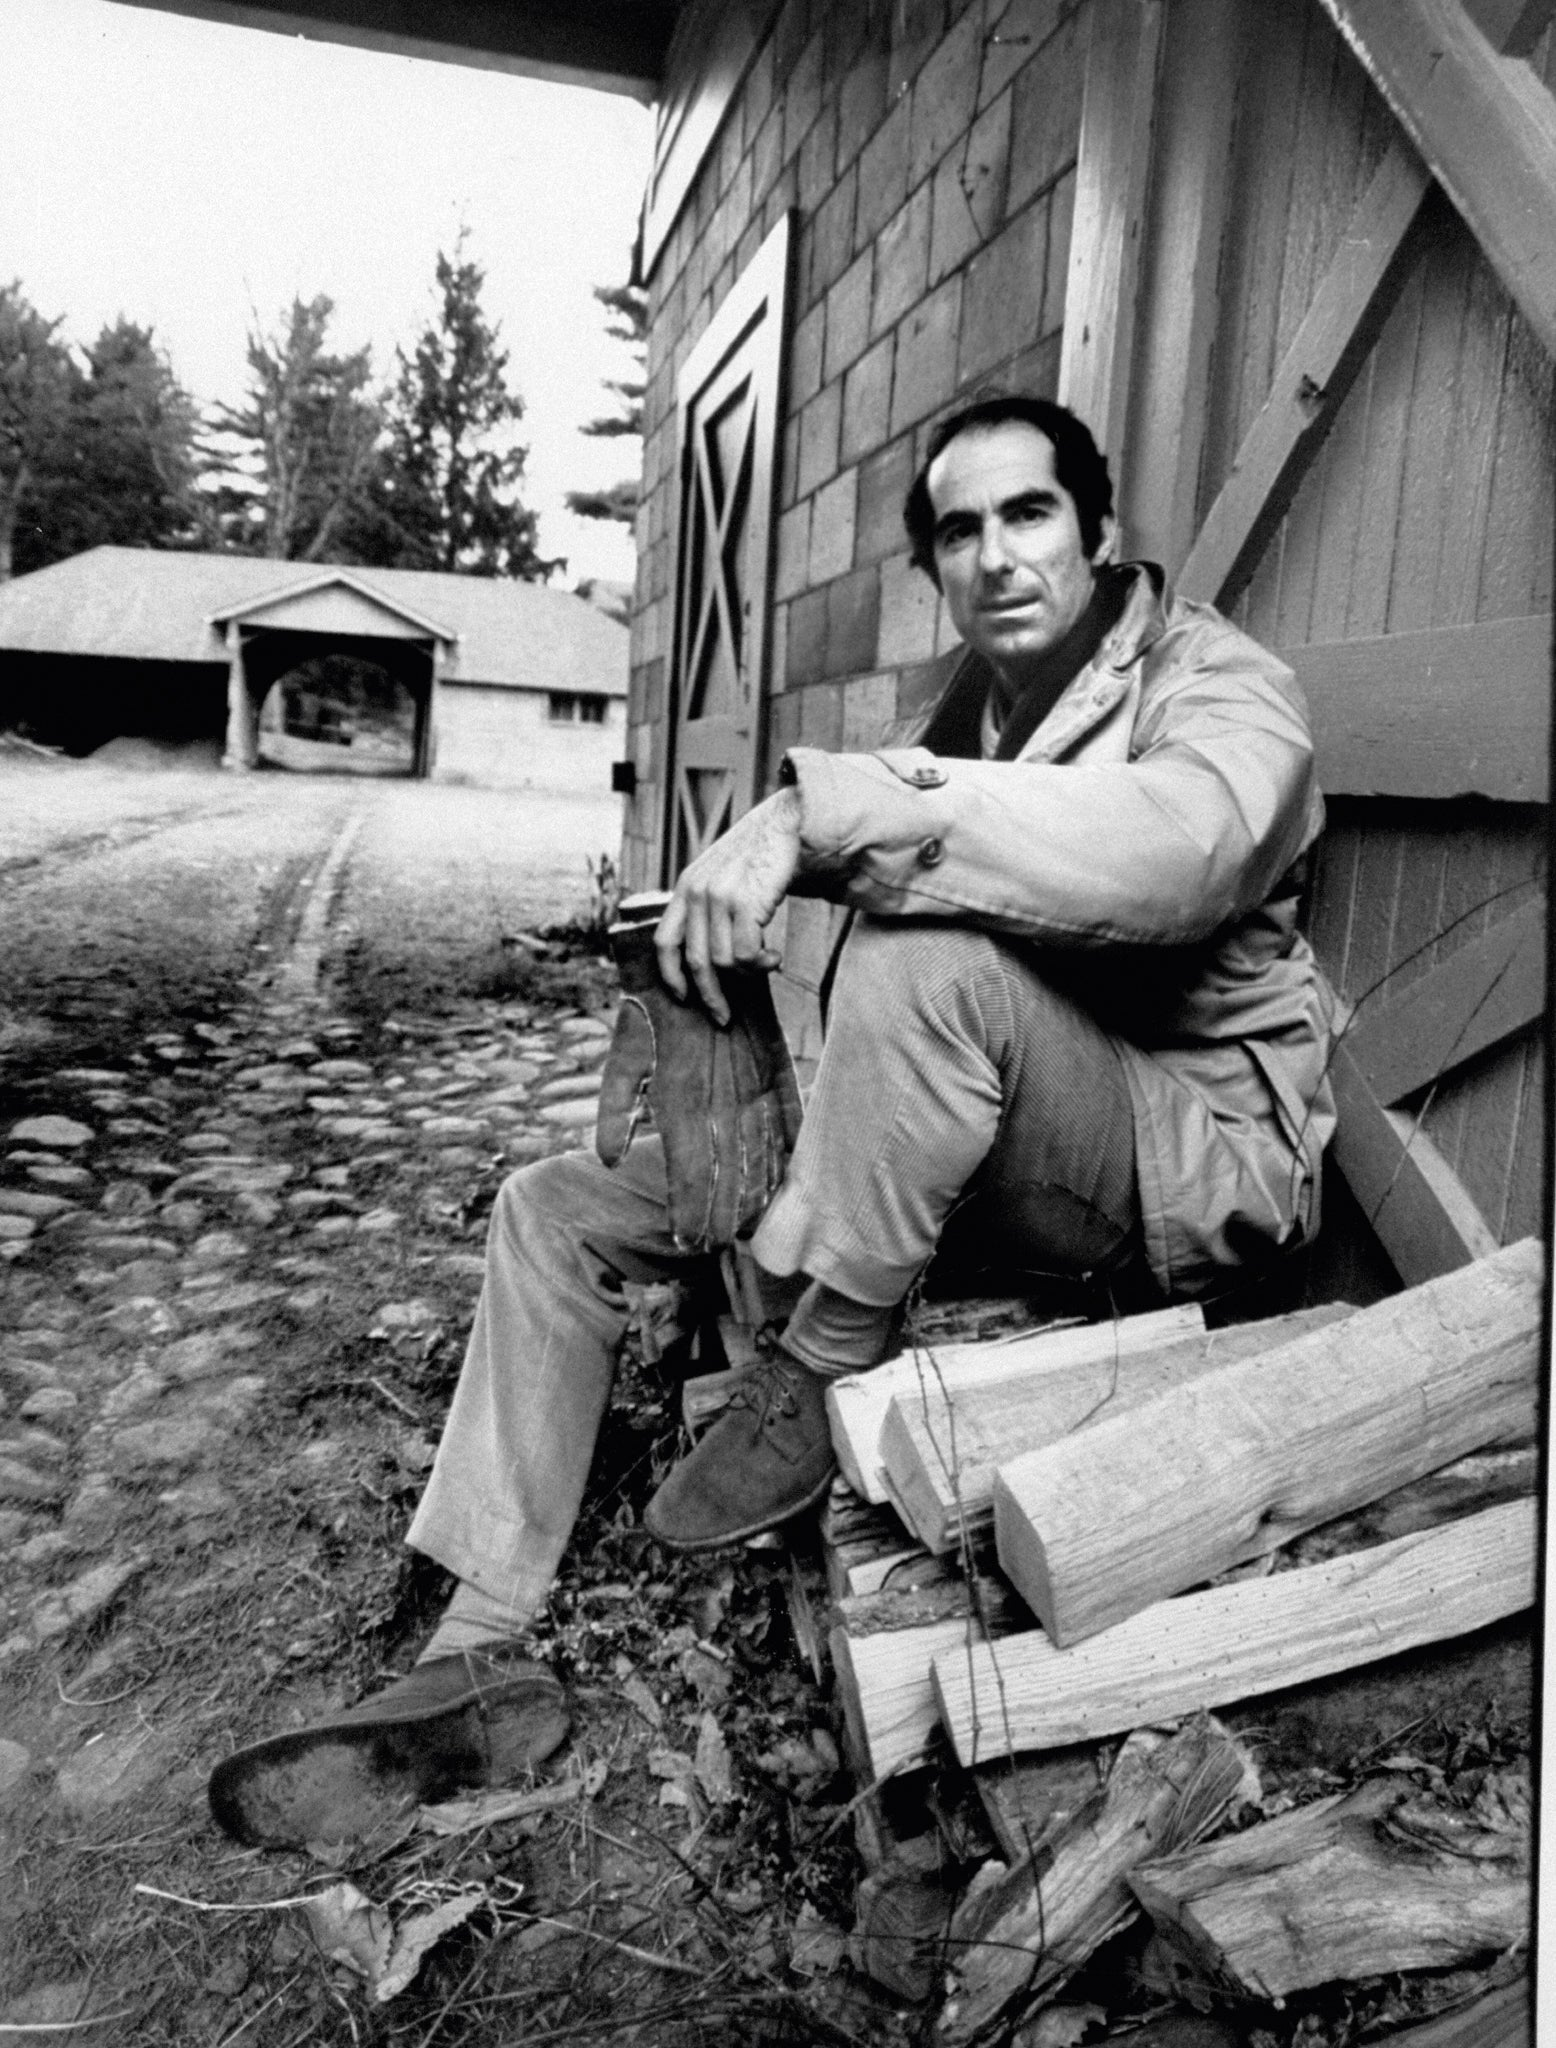 Philip Roth and the repellent